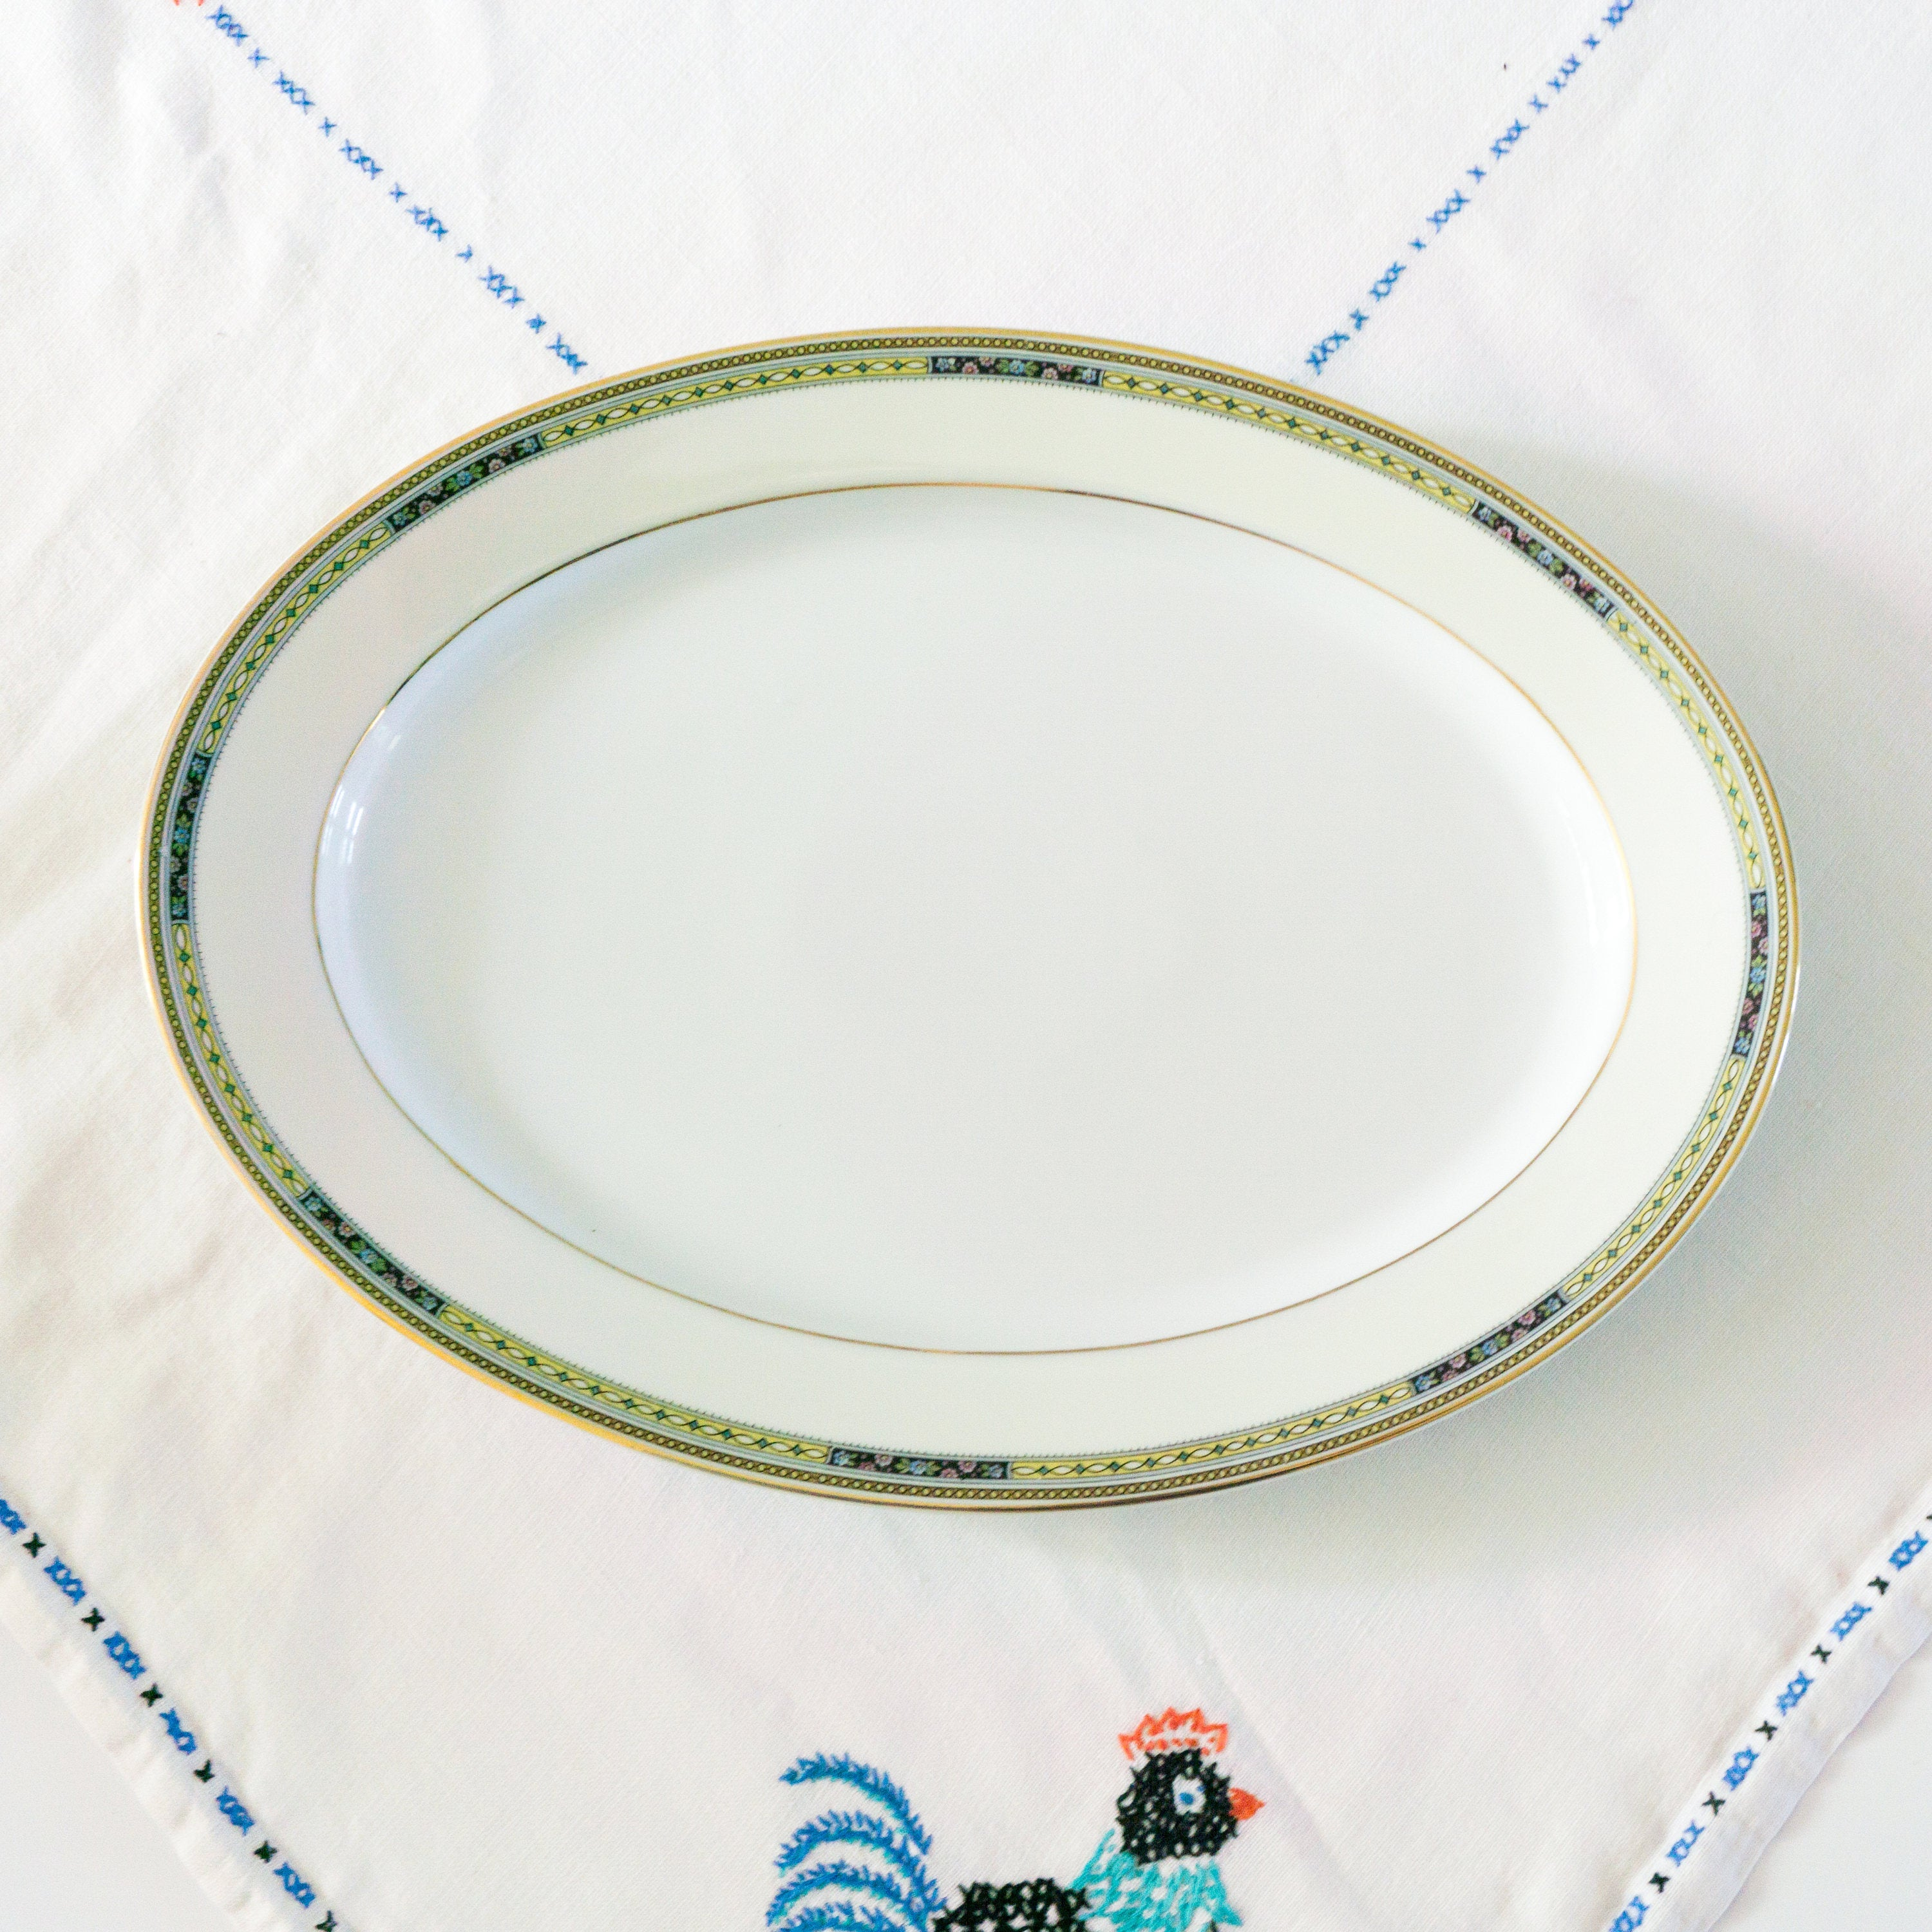 Antique Bavarian China Heinrich & Co Pattern 10263 Oval Serving Platter 14""